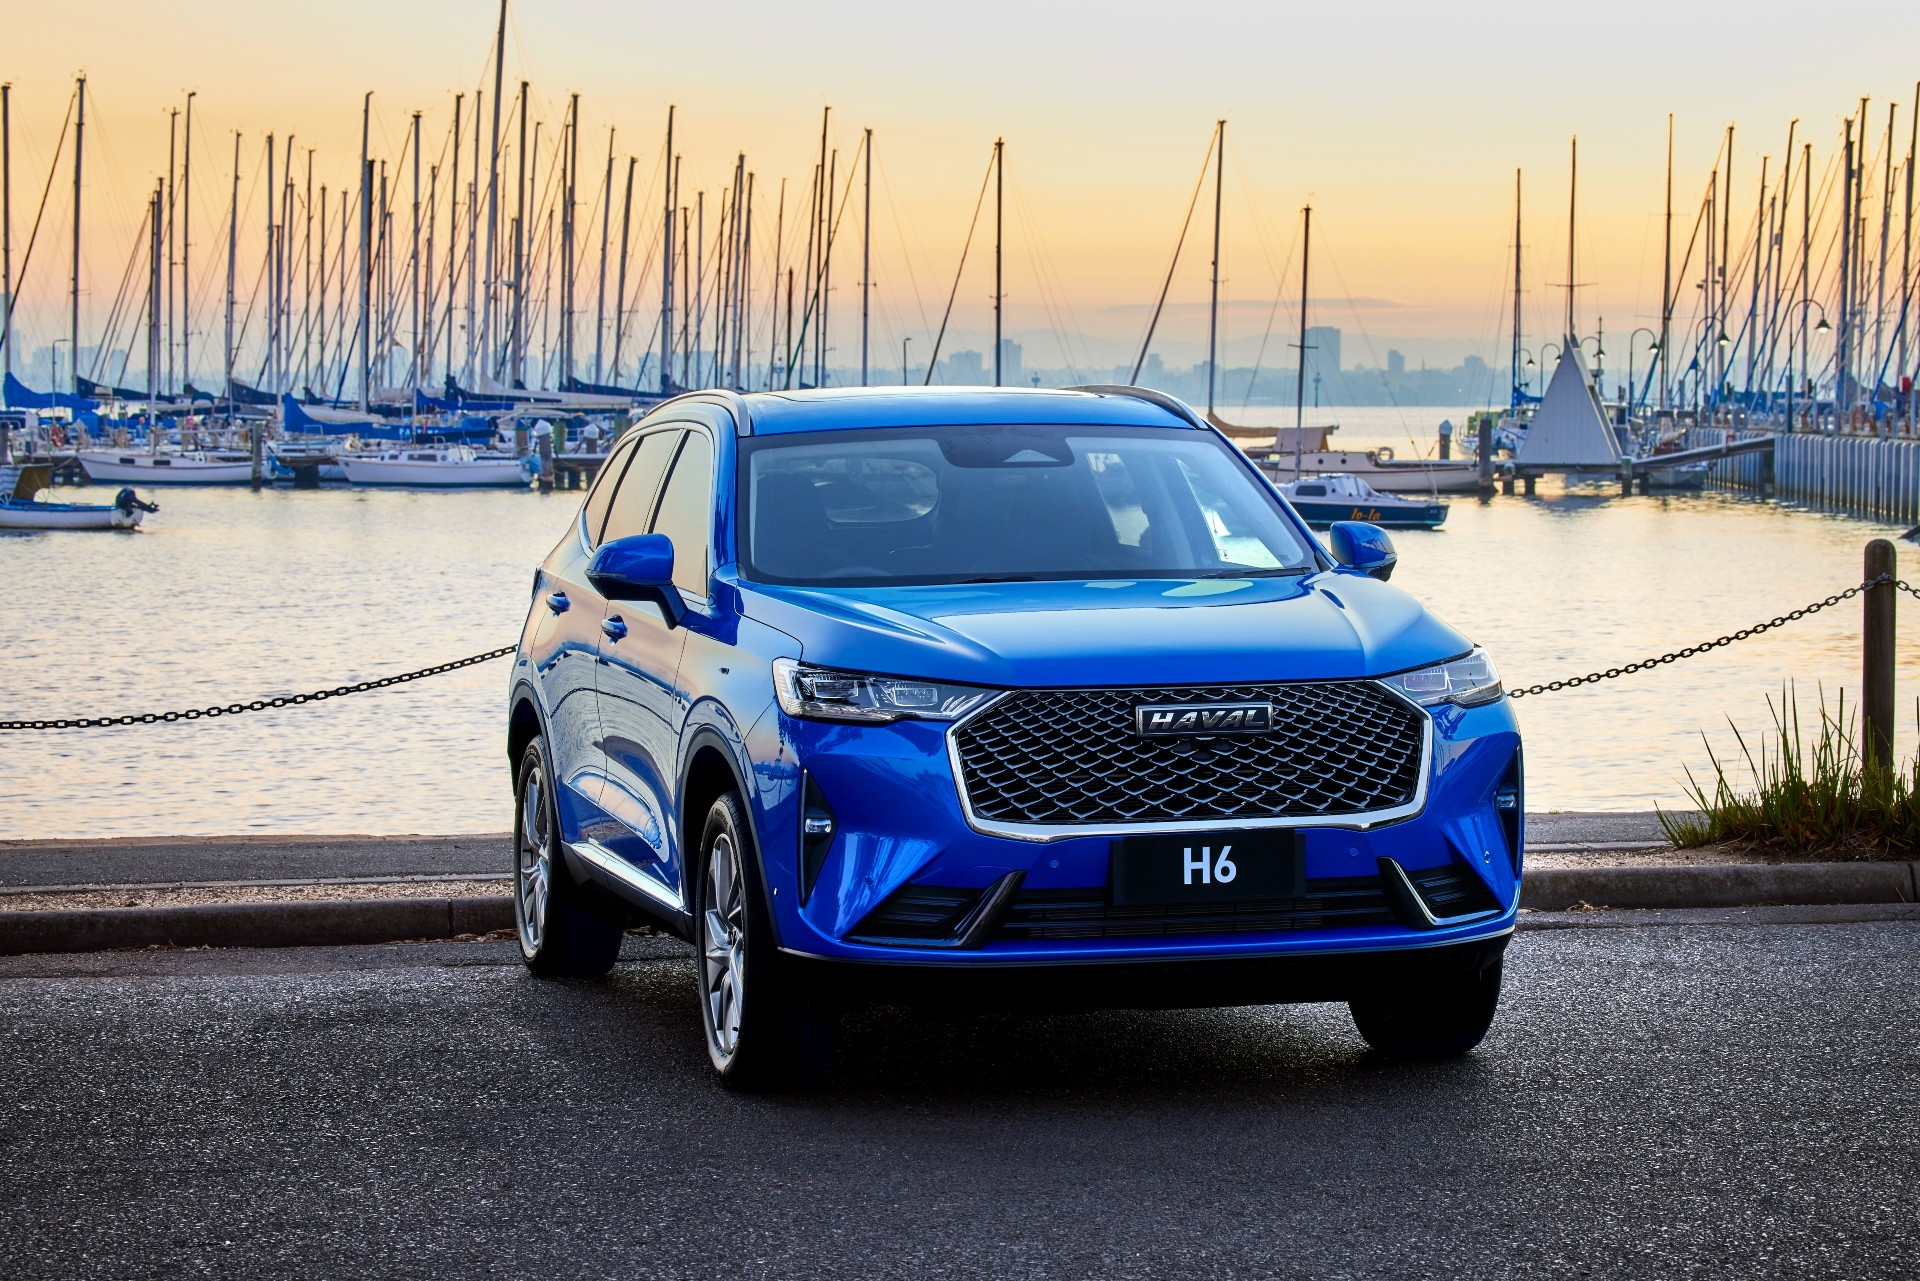 Meet the intelligent new SUV driving you into the future